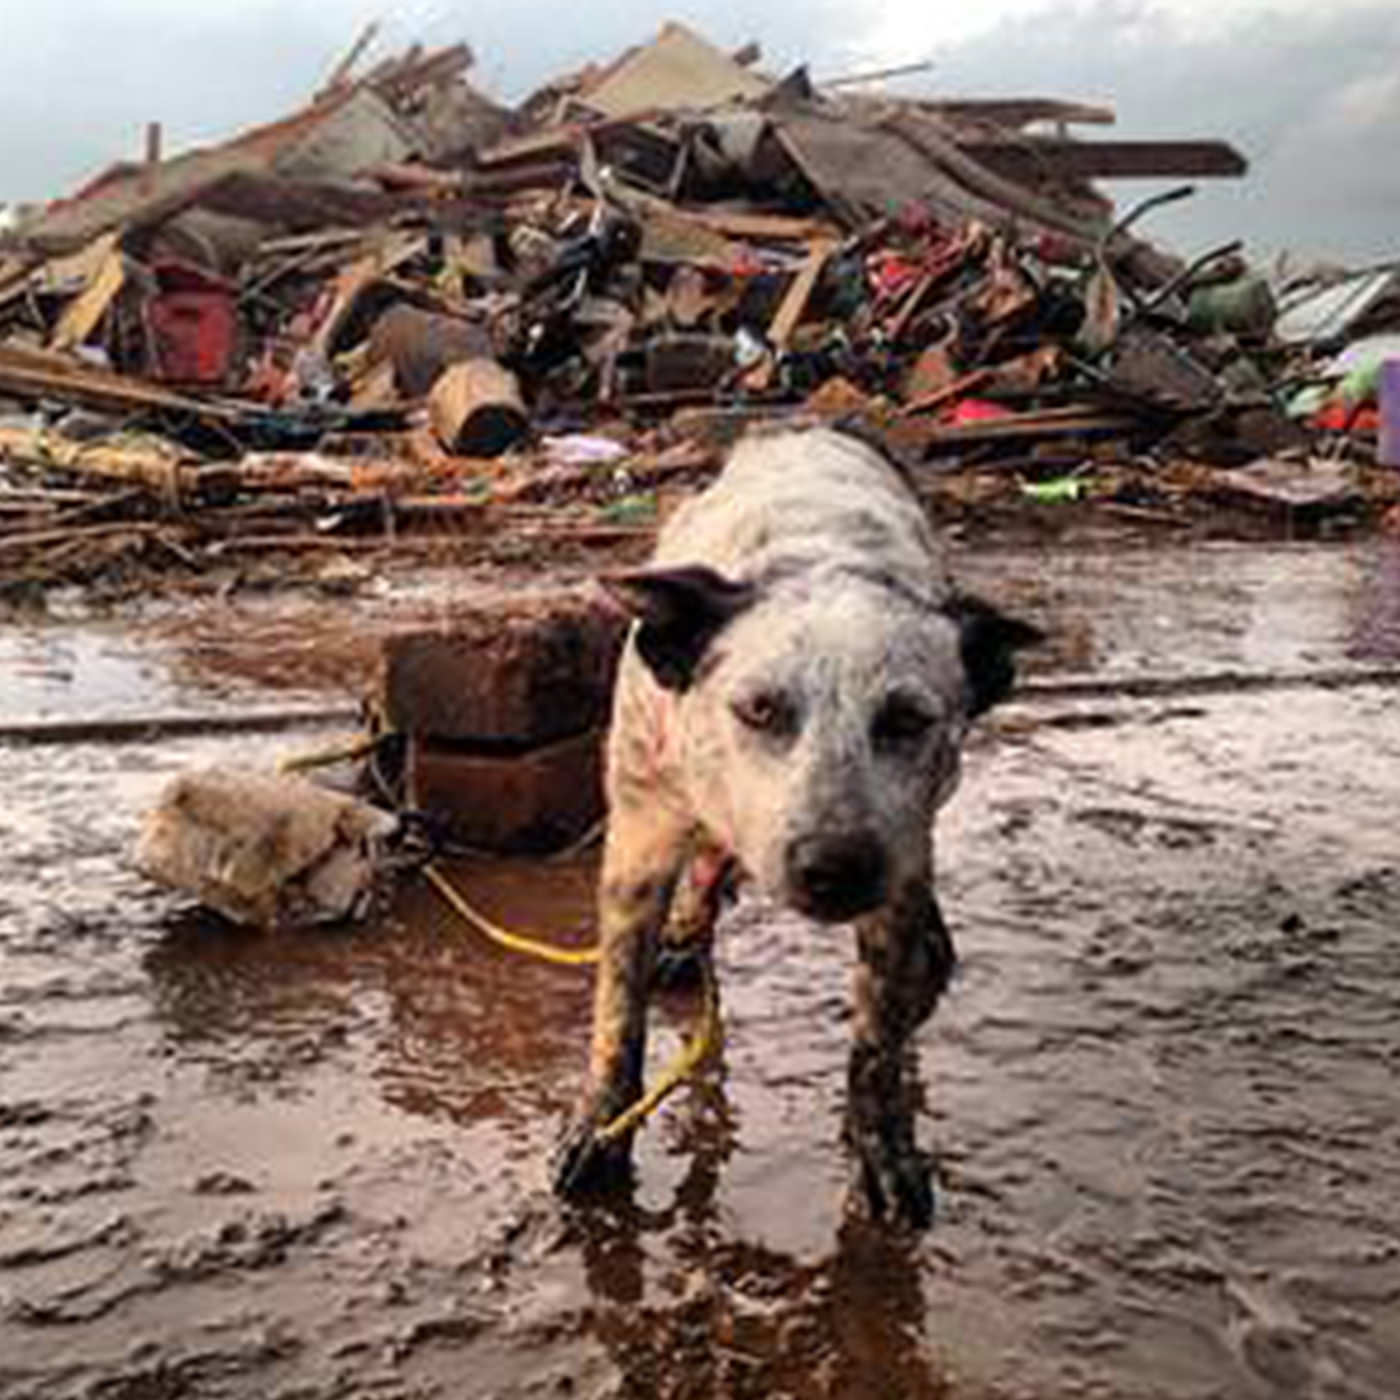 A photo of a dog tied to a concrete block in a flooded area, in front of a pile of rubble